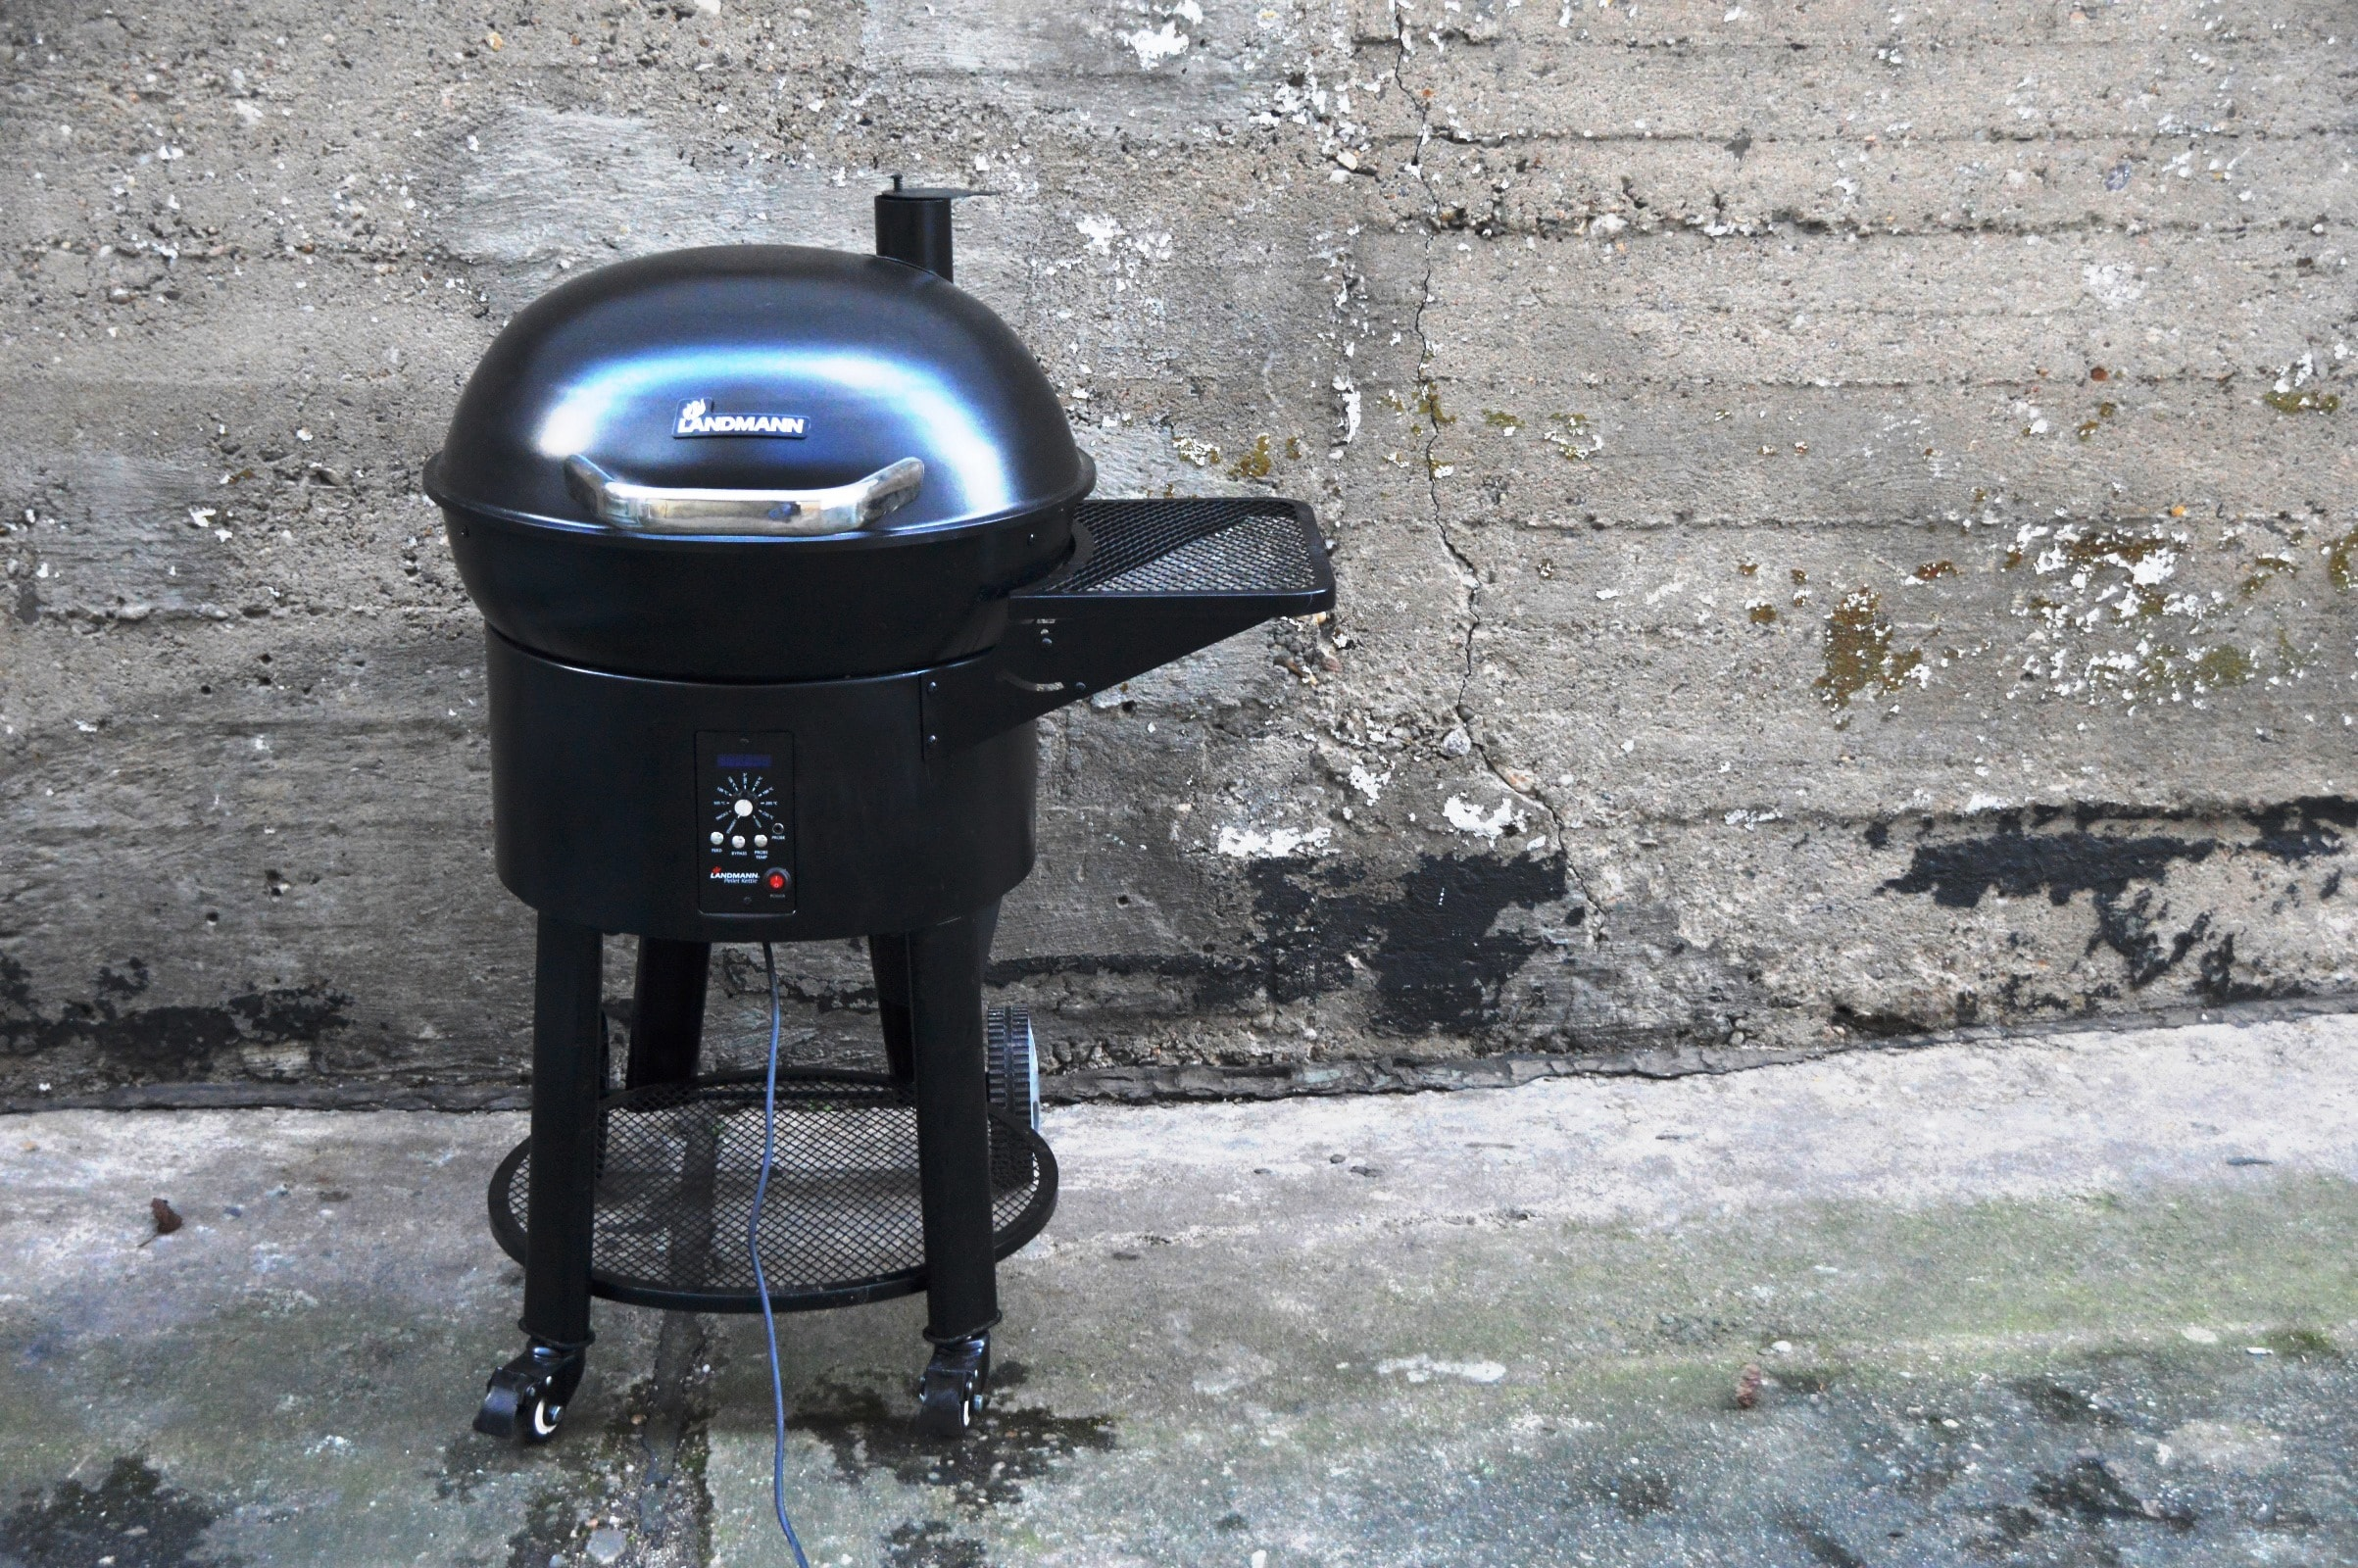 Landmann Gasgrill Test : Angegrillt: landmann pellet kettle im test bacon zum steak